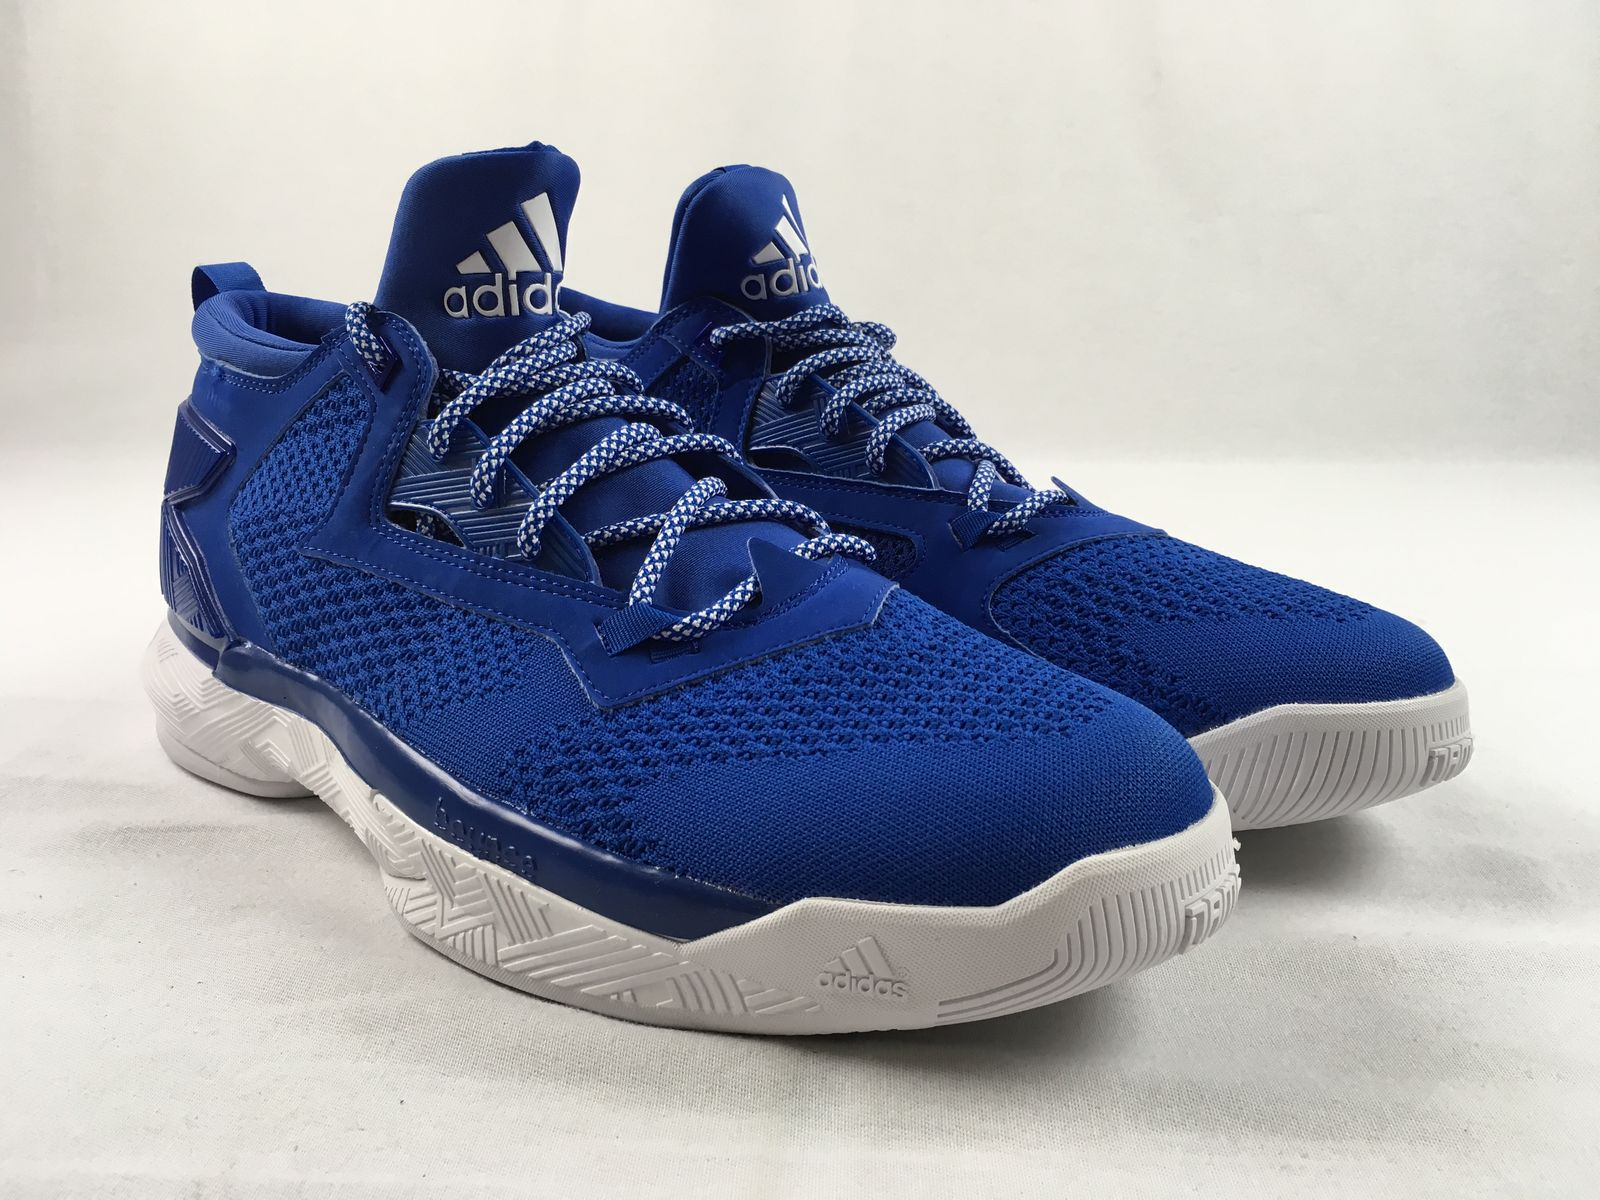 new product 609da eccba Details about NEW adidas D Lillard - Blue Basketball Shoes (Men s 13.5)